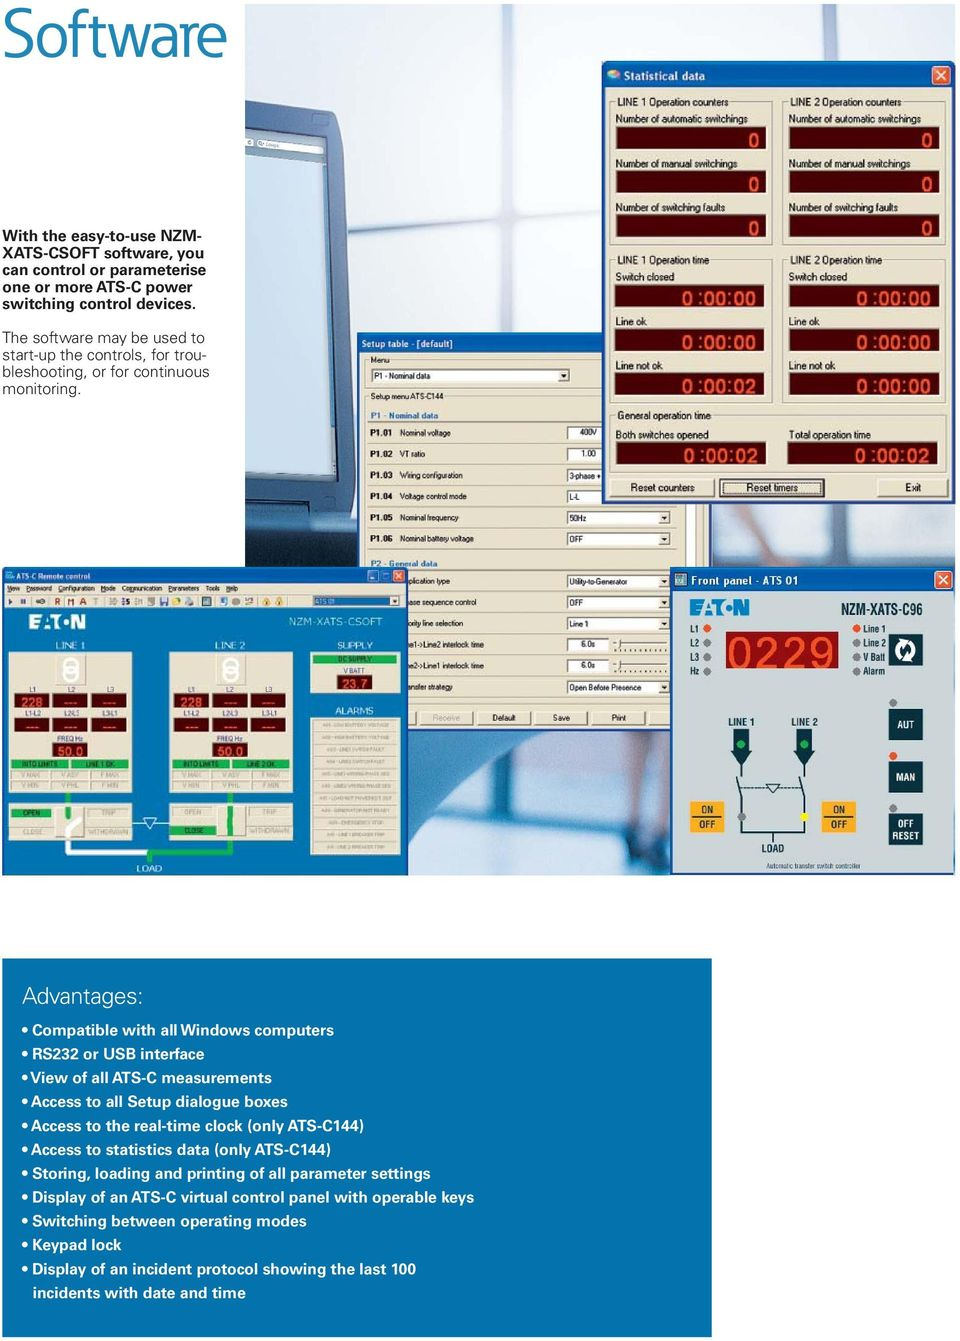 Advantages: Compatible with all Windows computers RS232 or USB interface View of all ATS-C measurements Access to all Setup dialogue boxes Access to the real-time clock (only